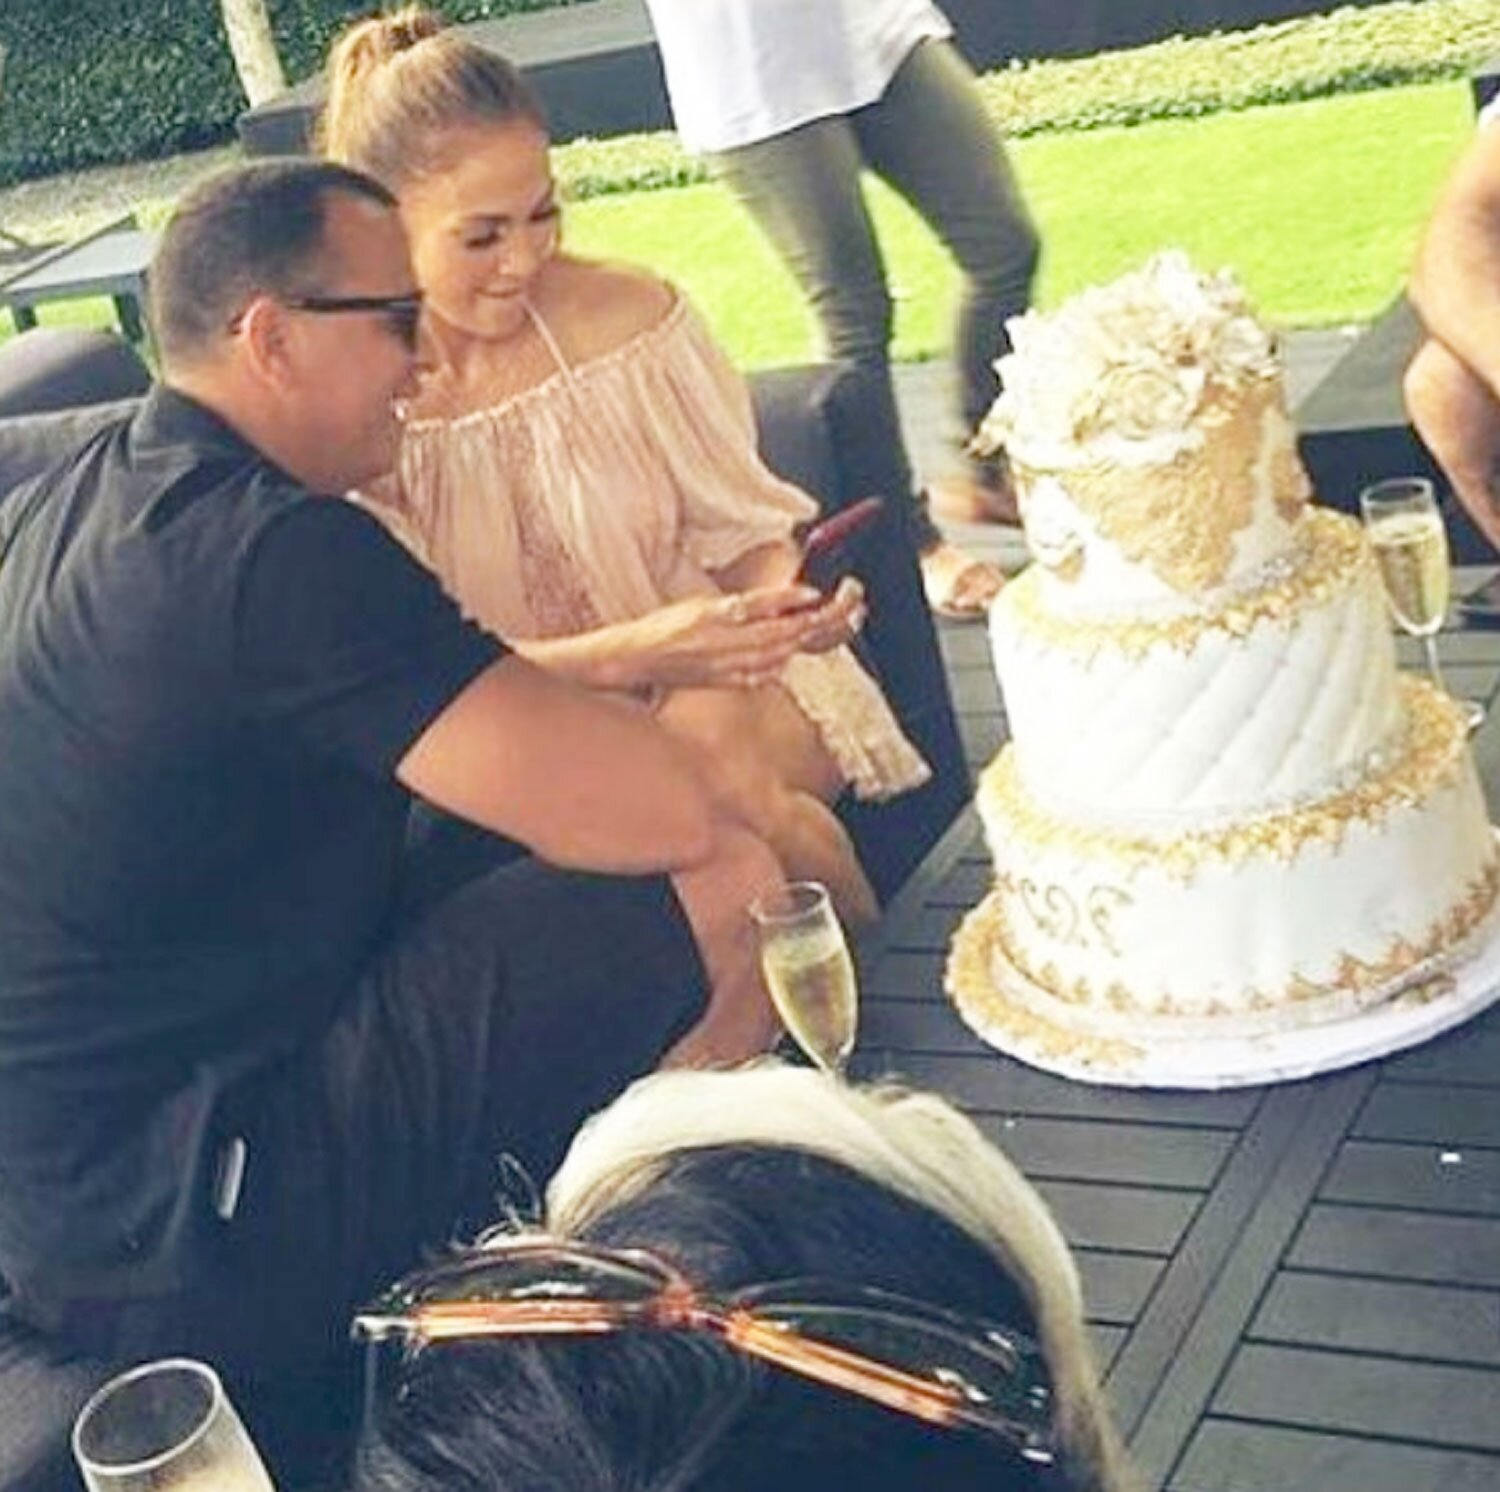 Peachy Jennifer Lopez Gets Another Birthday Cake From Alex Rodriguez Personalised Birthday Cards Petedlily Jamesorg